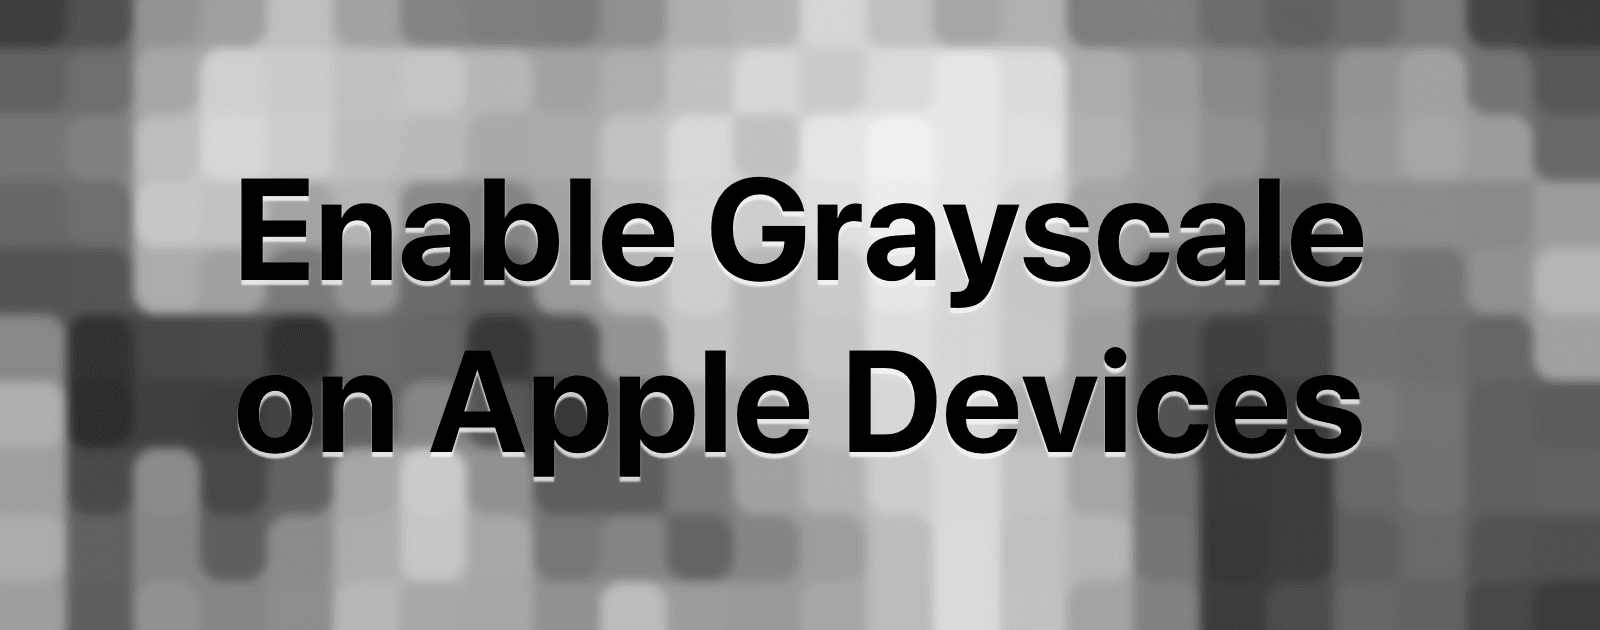 Enable Grayscale On Apple Devices To Save Battery And Your